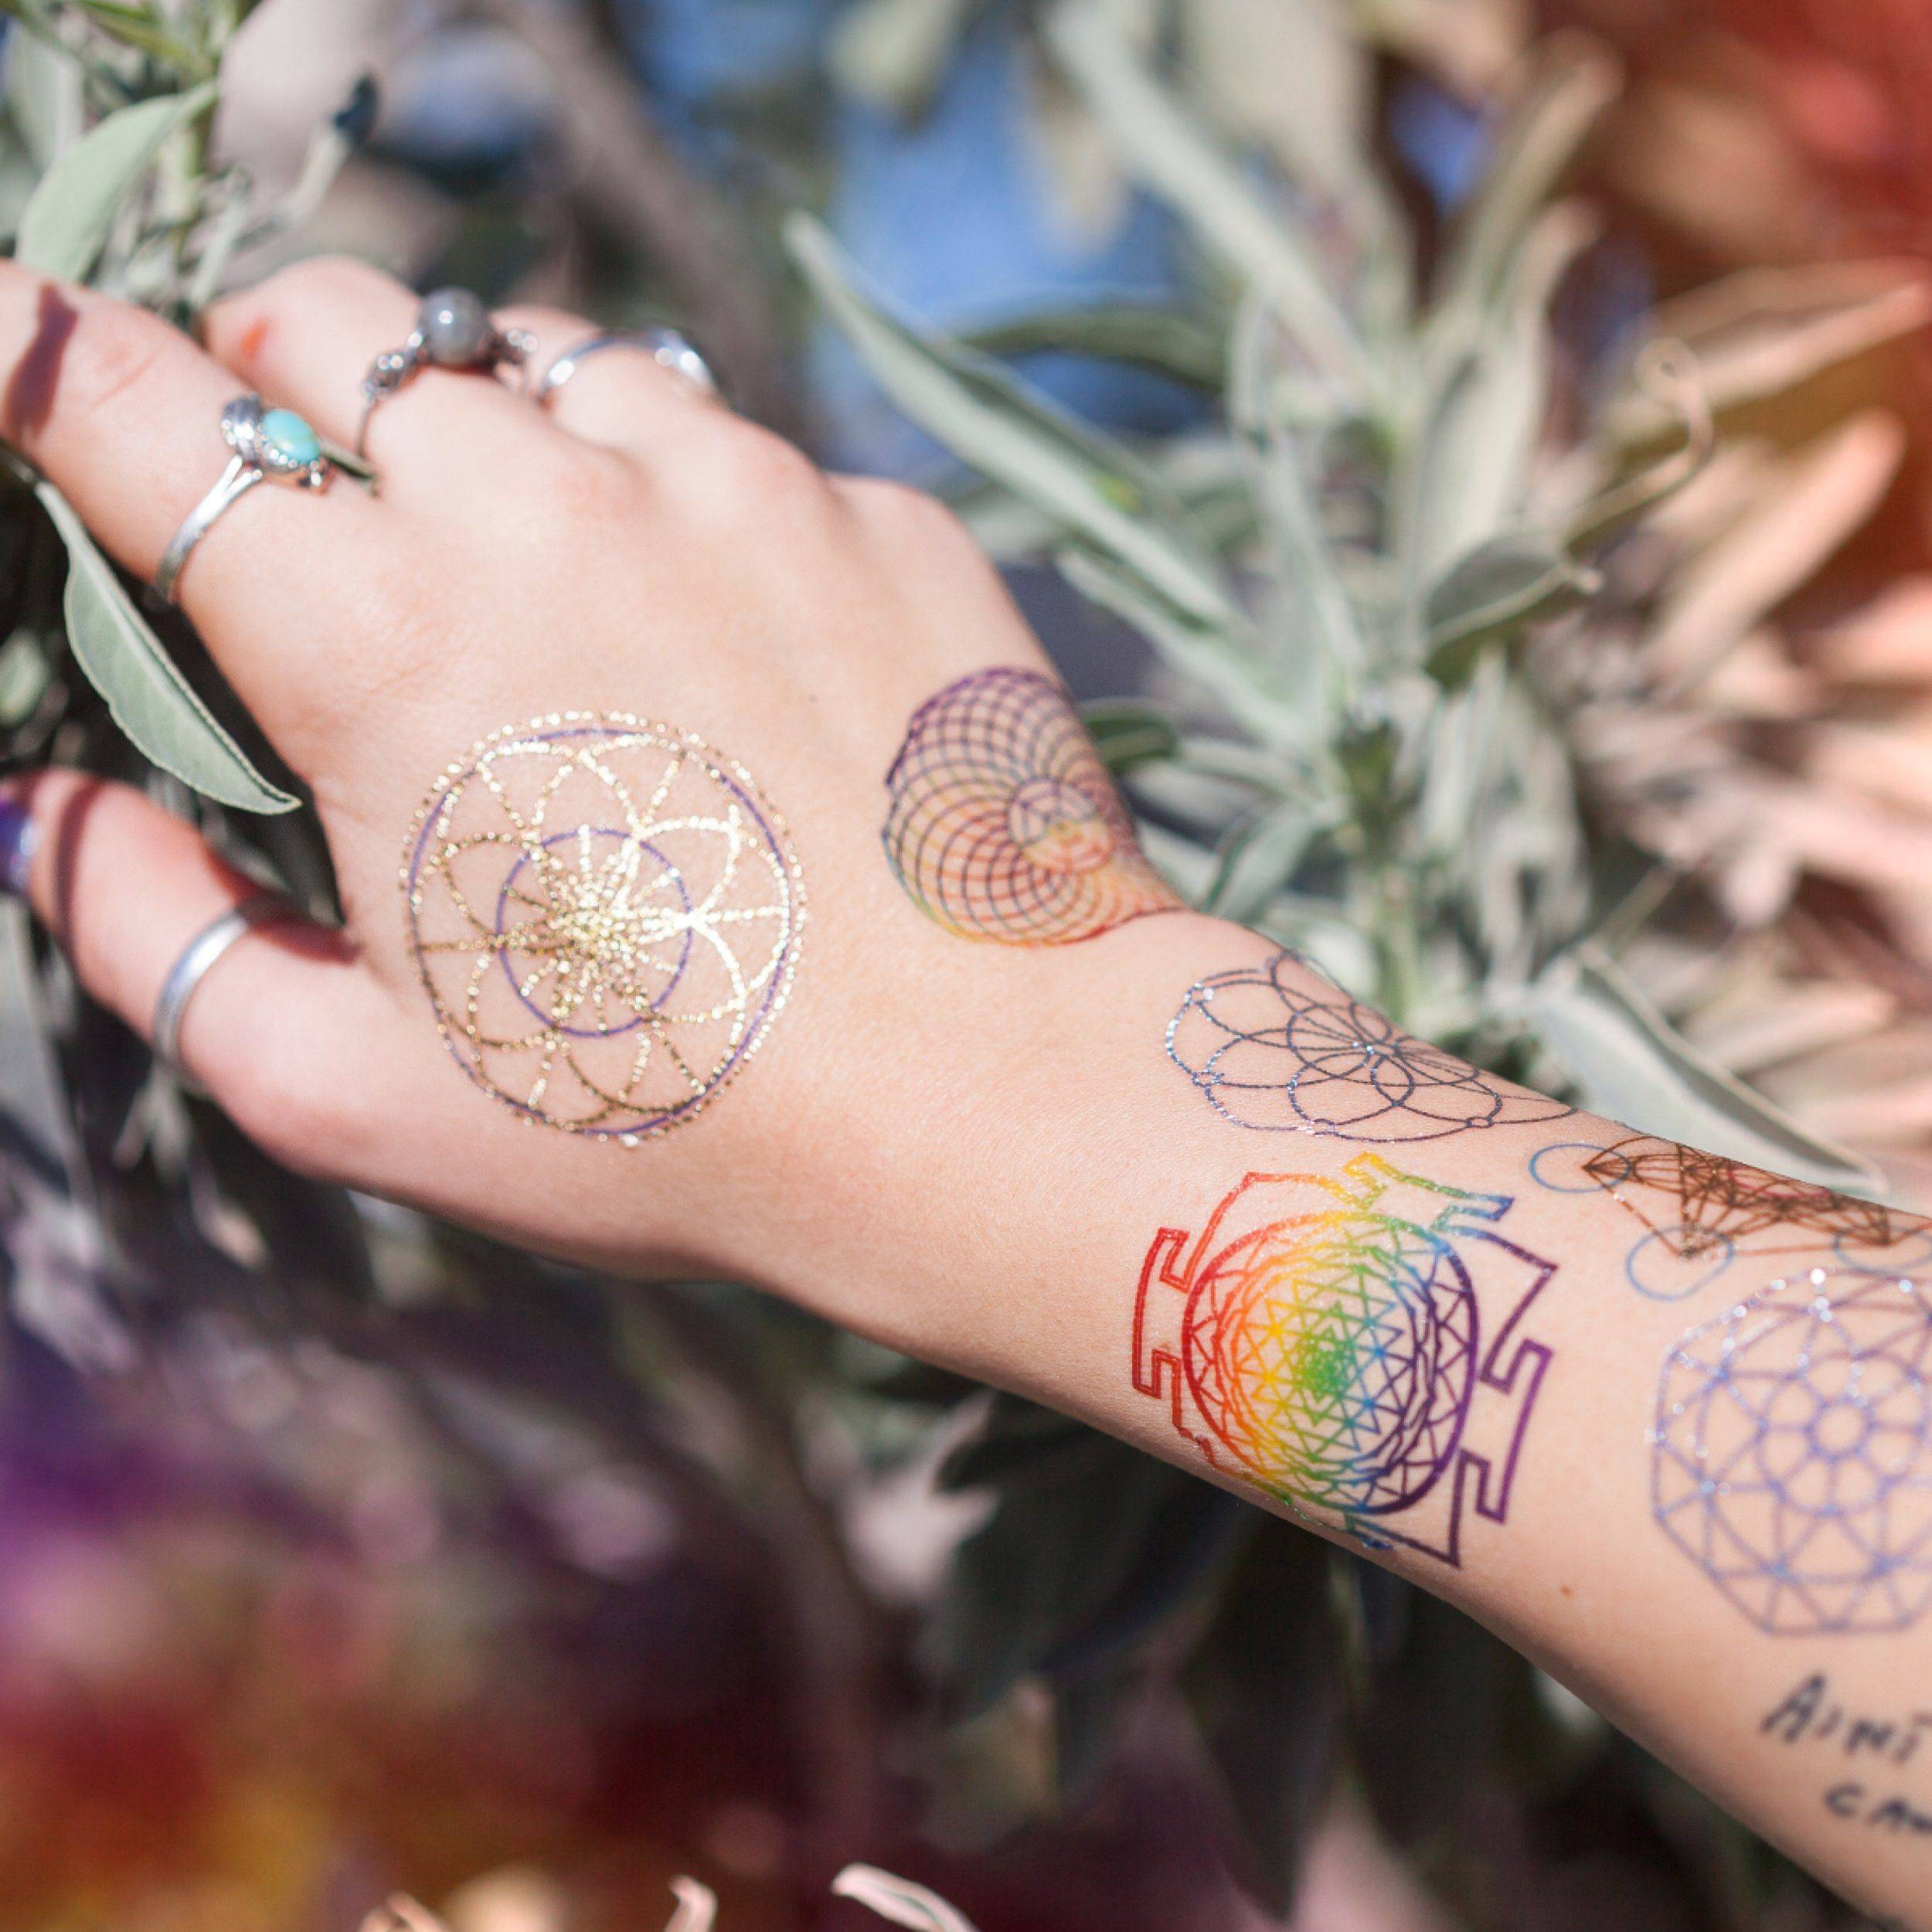 Sacred Geometry Tattoo Trio For Beauty Connection And Goddess Adornment